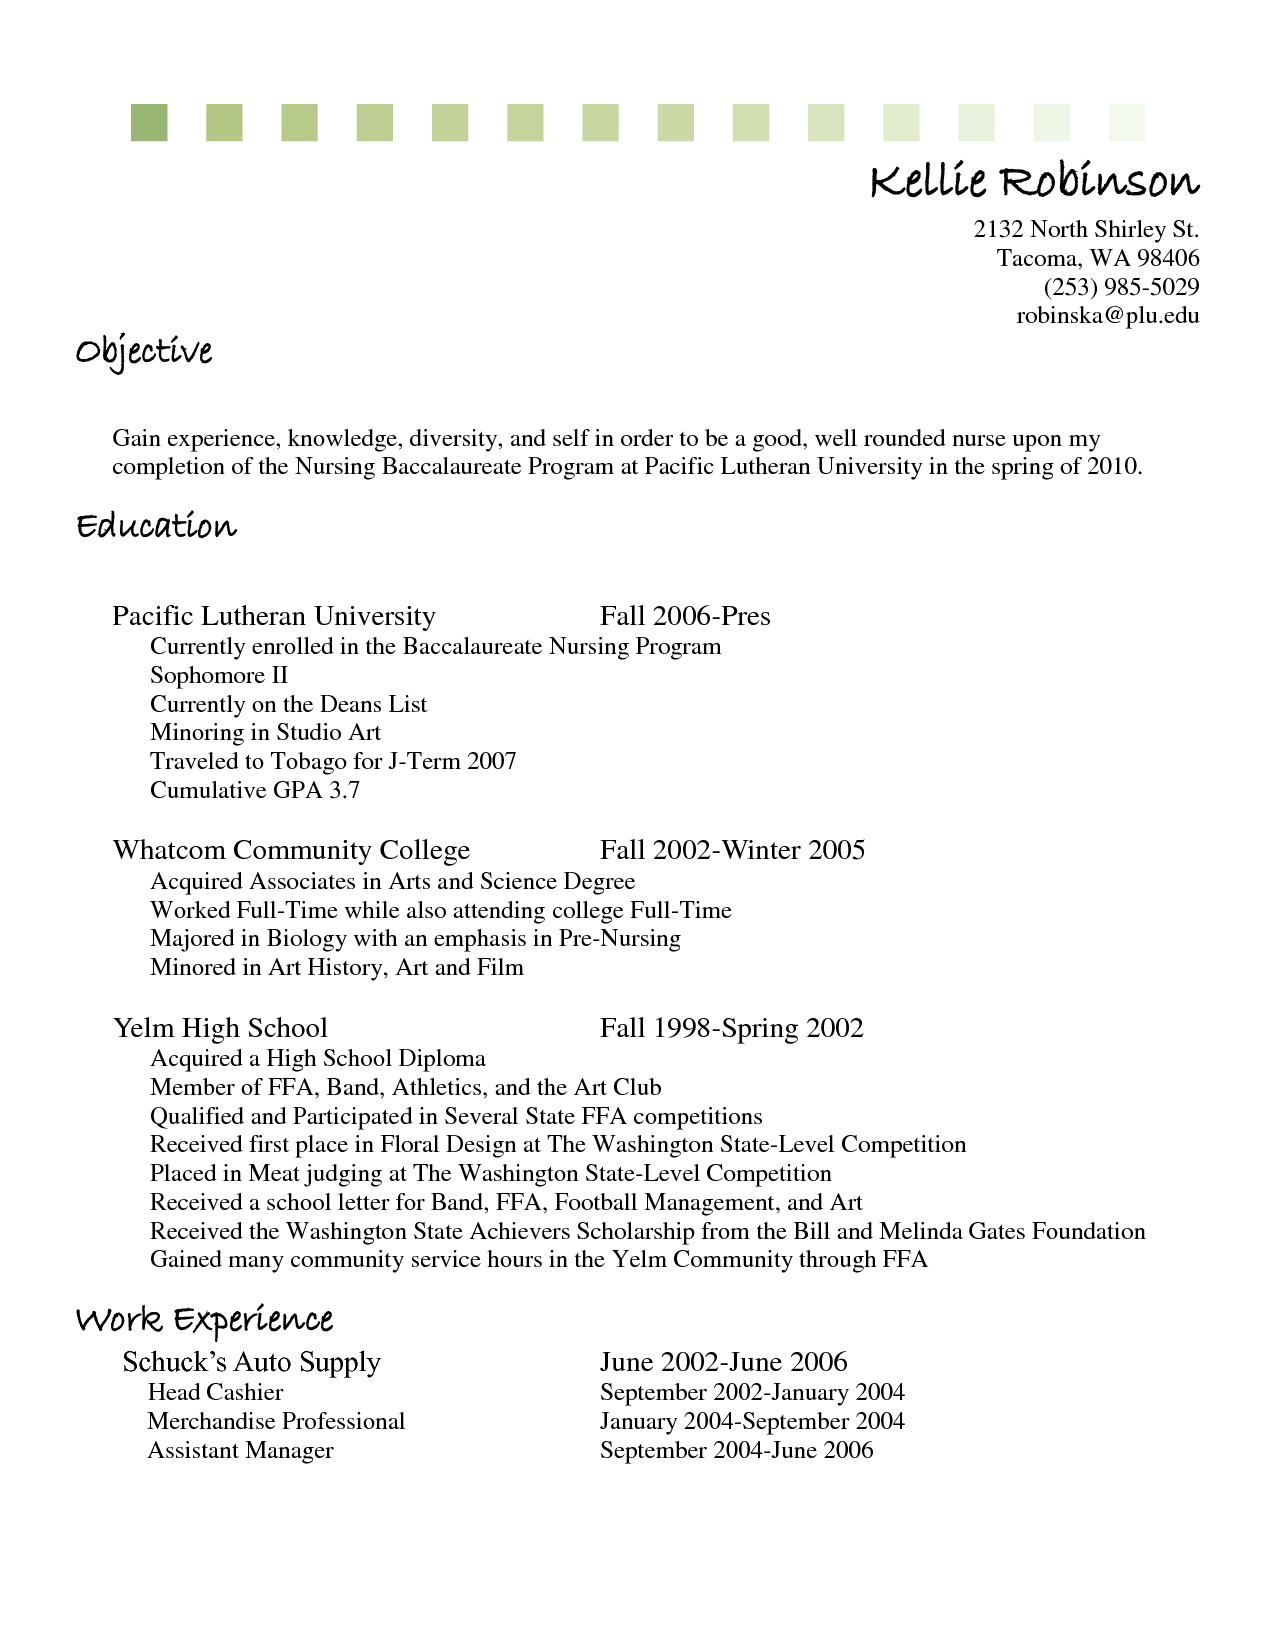 example resume cashier job sample cover retail jobs letter - Examples Of Resumes For Cashiers